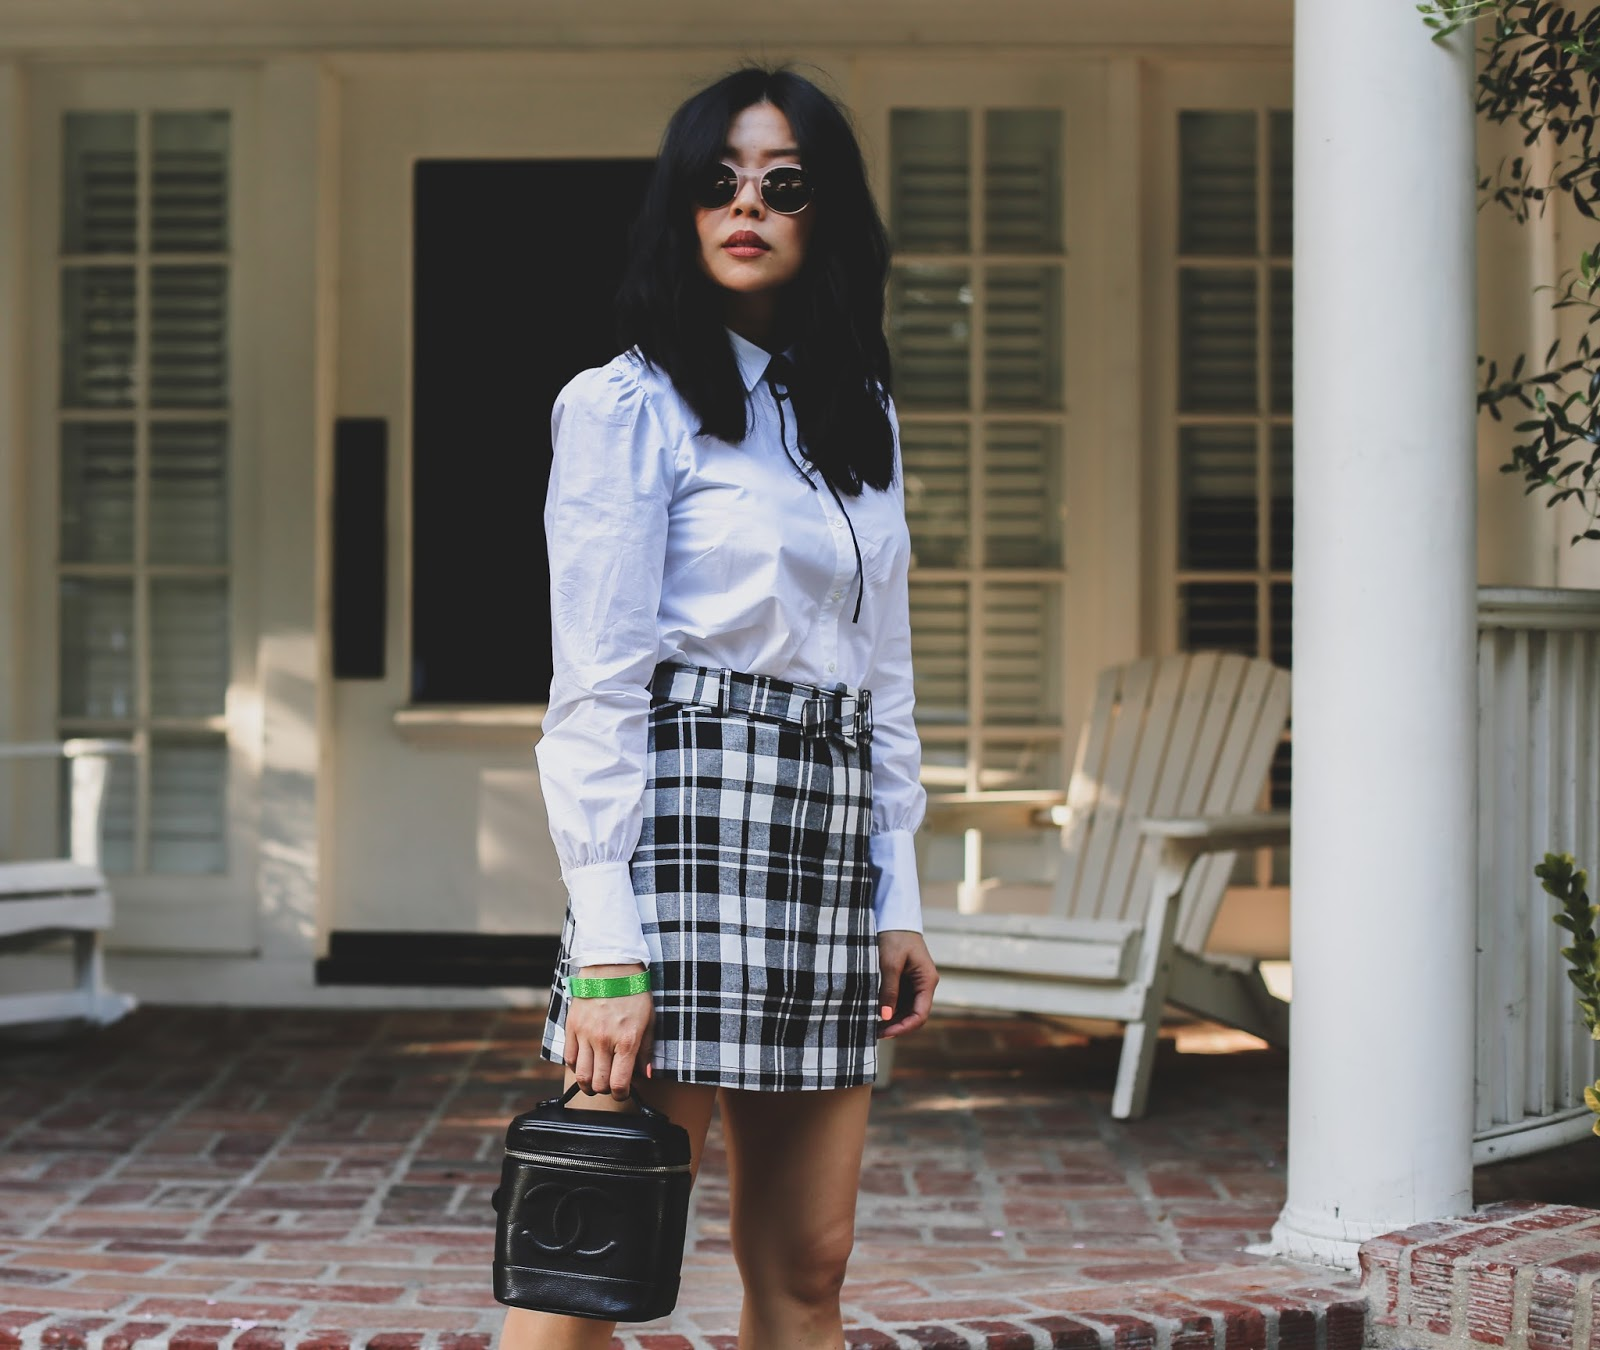 plaid skirt chic outfit idea